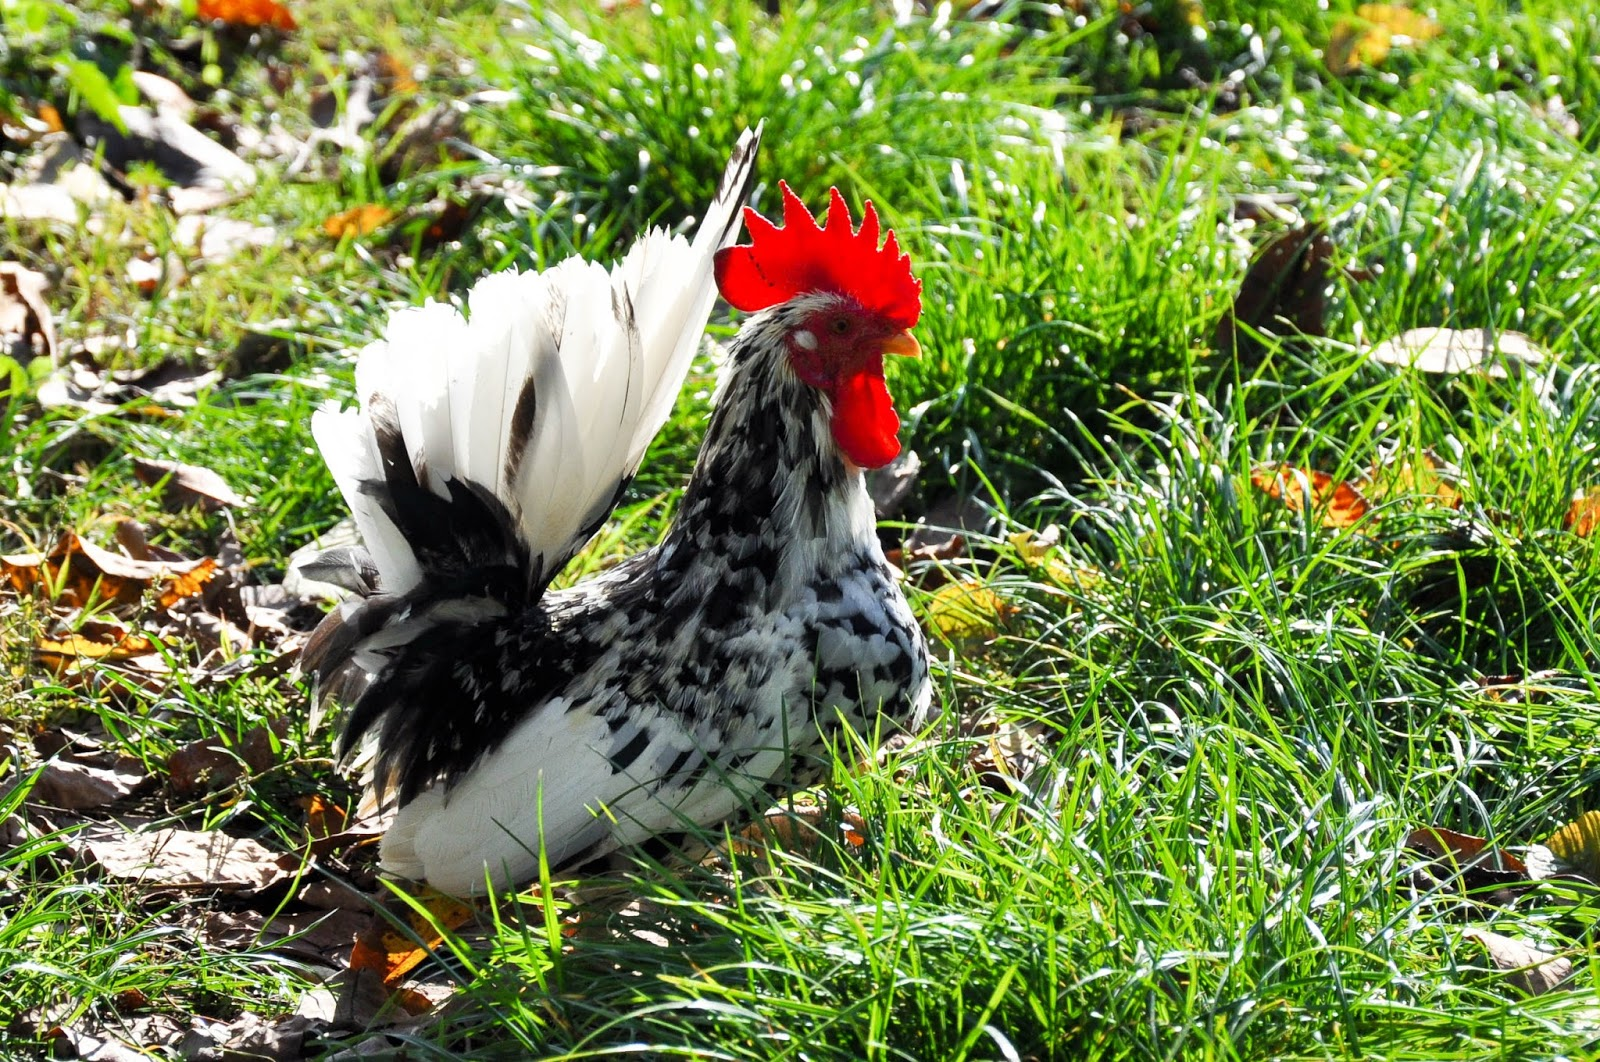 A handsome rooster in the grass, Agriturismo La Borina, Veneto, Italy